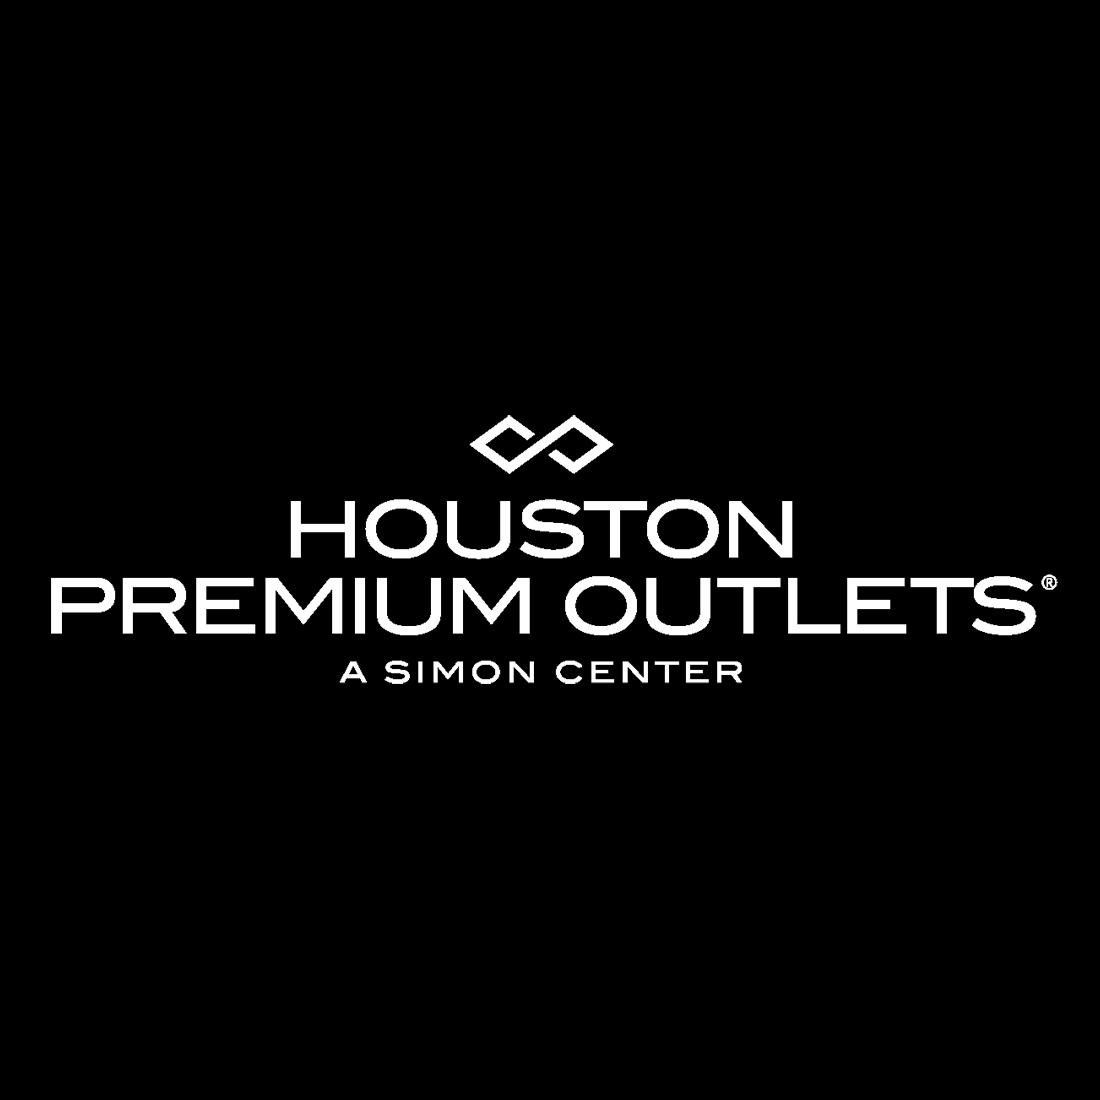 Houston Premium Outlets® offers designer and name-brand outlet stores including Armani Outlet, Burberry, Nike, Kate Spade New York and Tory Burch.